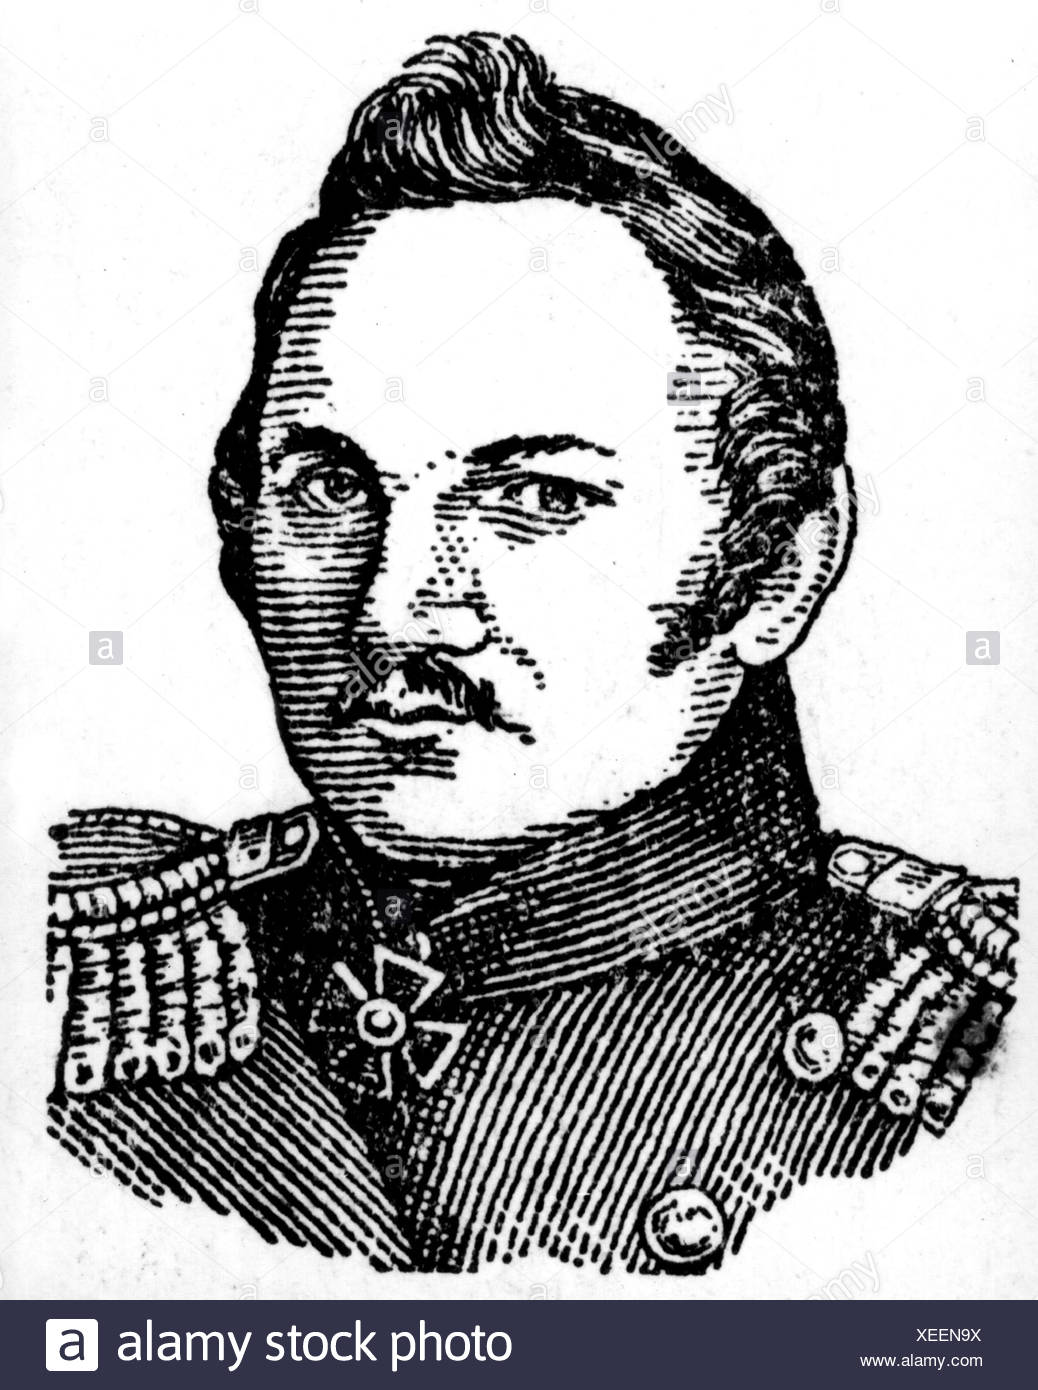 Bellingshausen, Fabian von, 20.9.1778 - 25.1.1852, Russian navigator and Antarctic explorer, portrait, later drawing, Additional-Rights-Clearances-NA - Stock Image